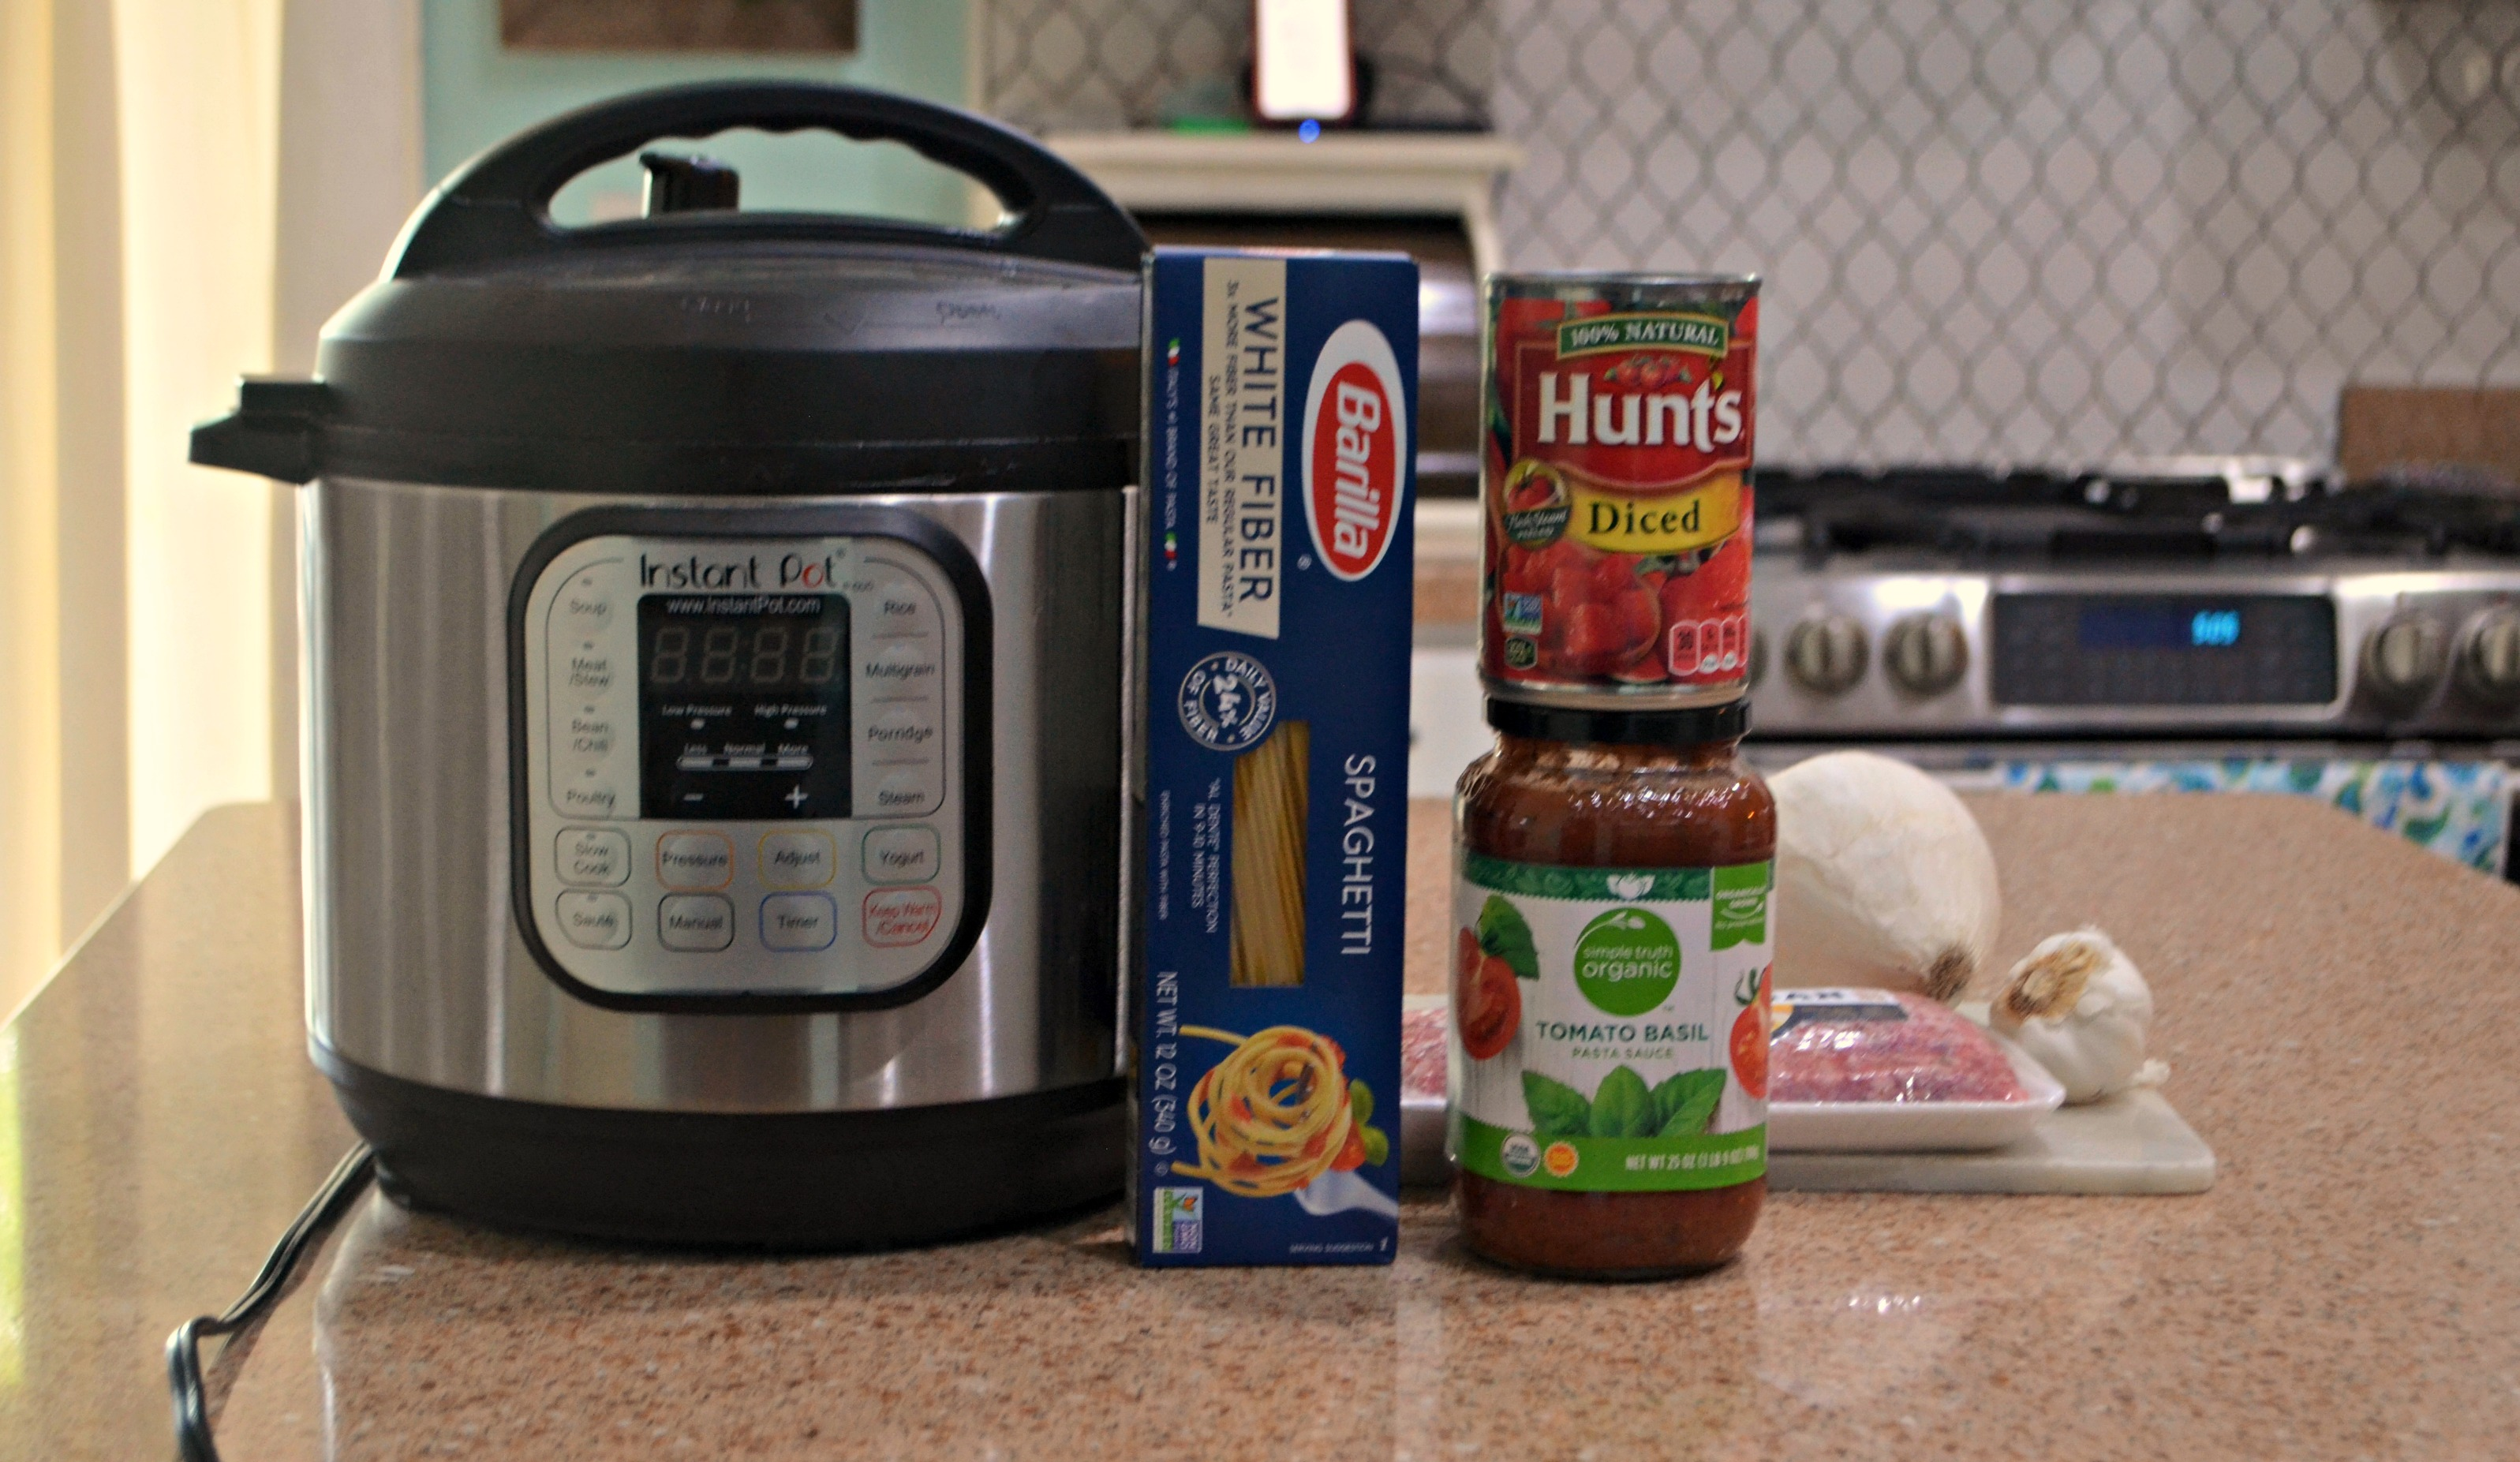 Instant Pot Spaghetti with Meat Sauce - Ingredients on the counter